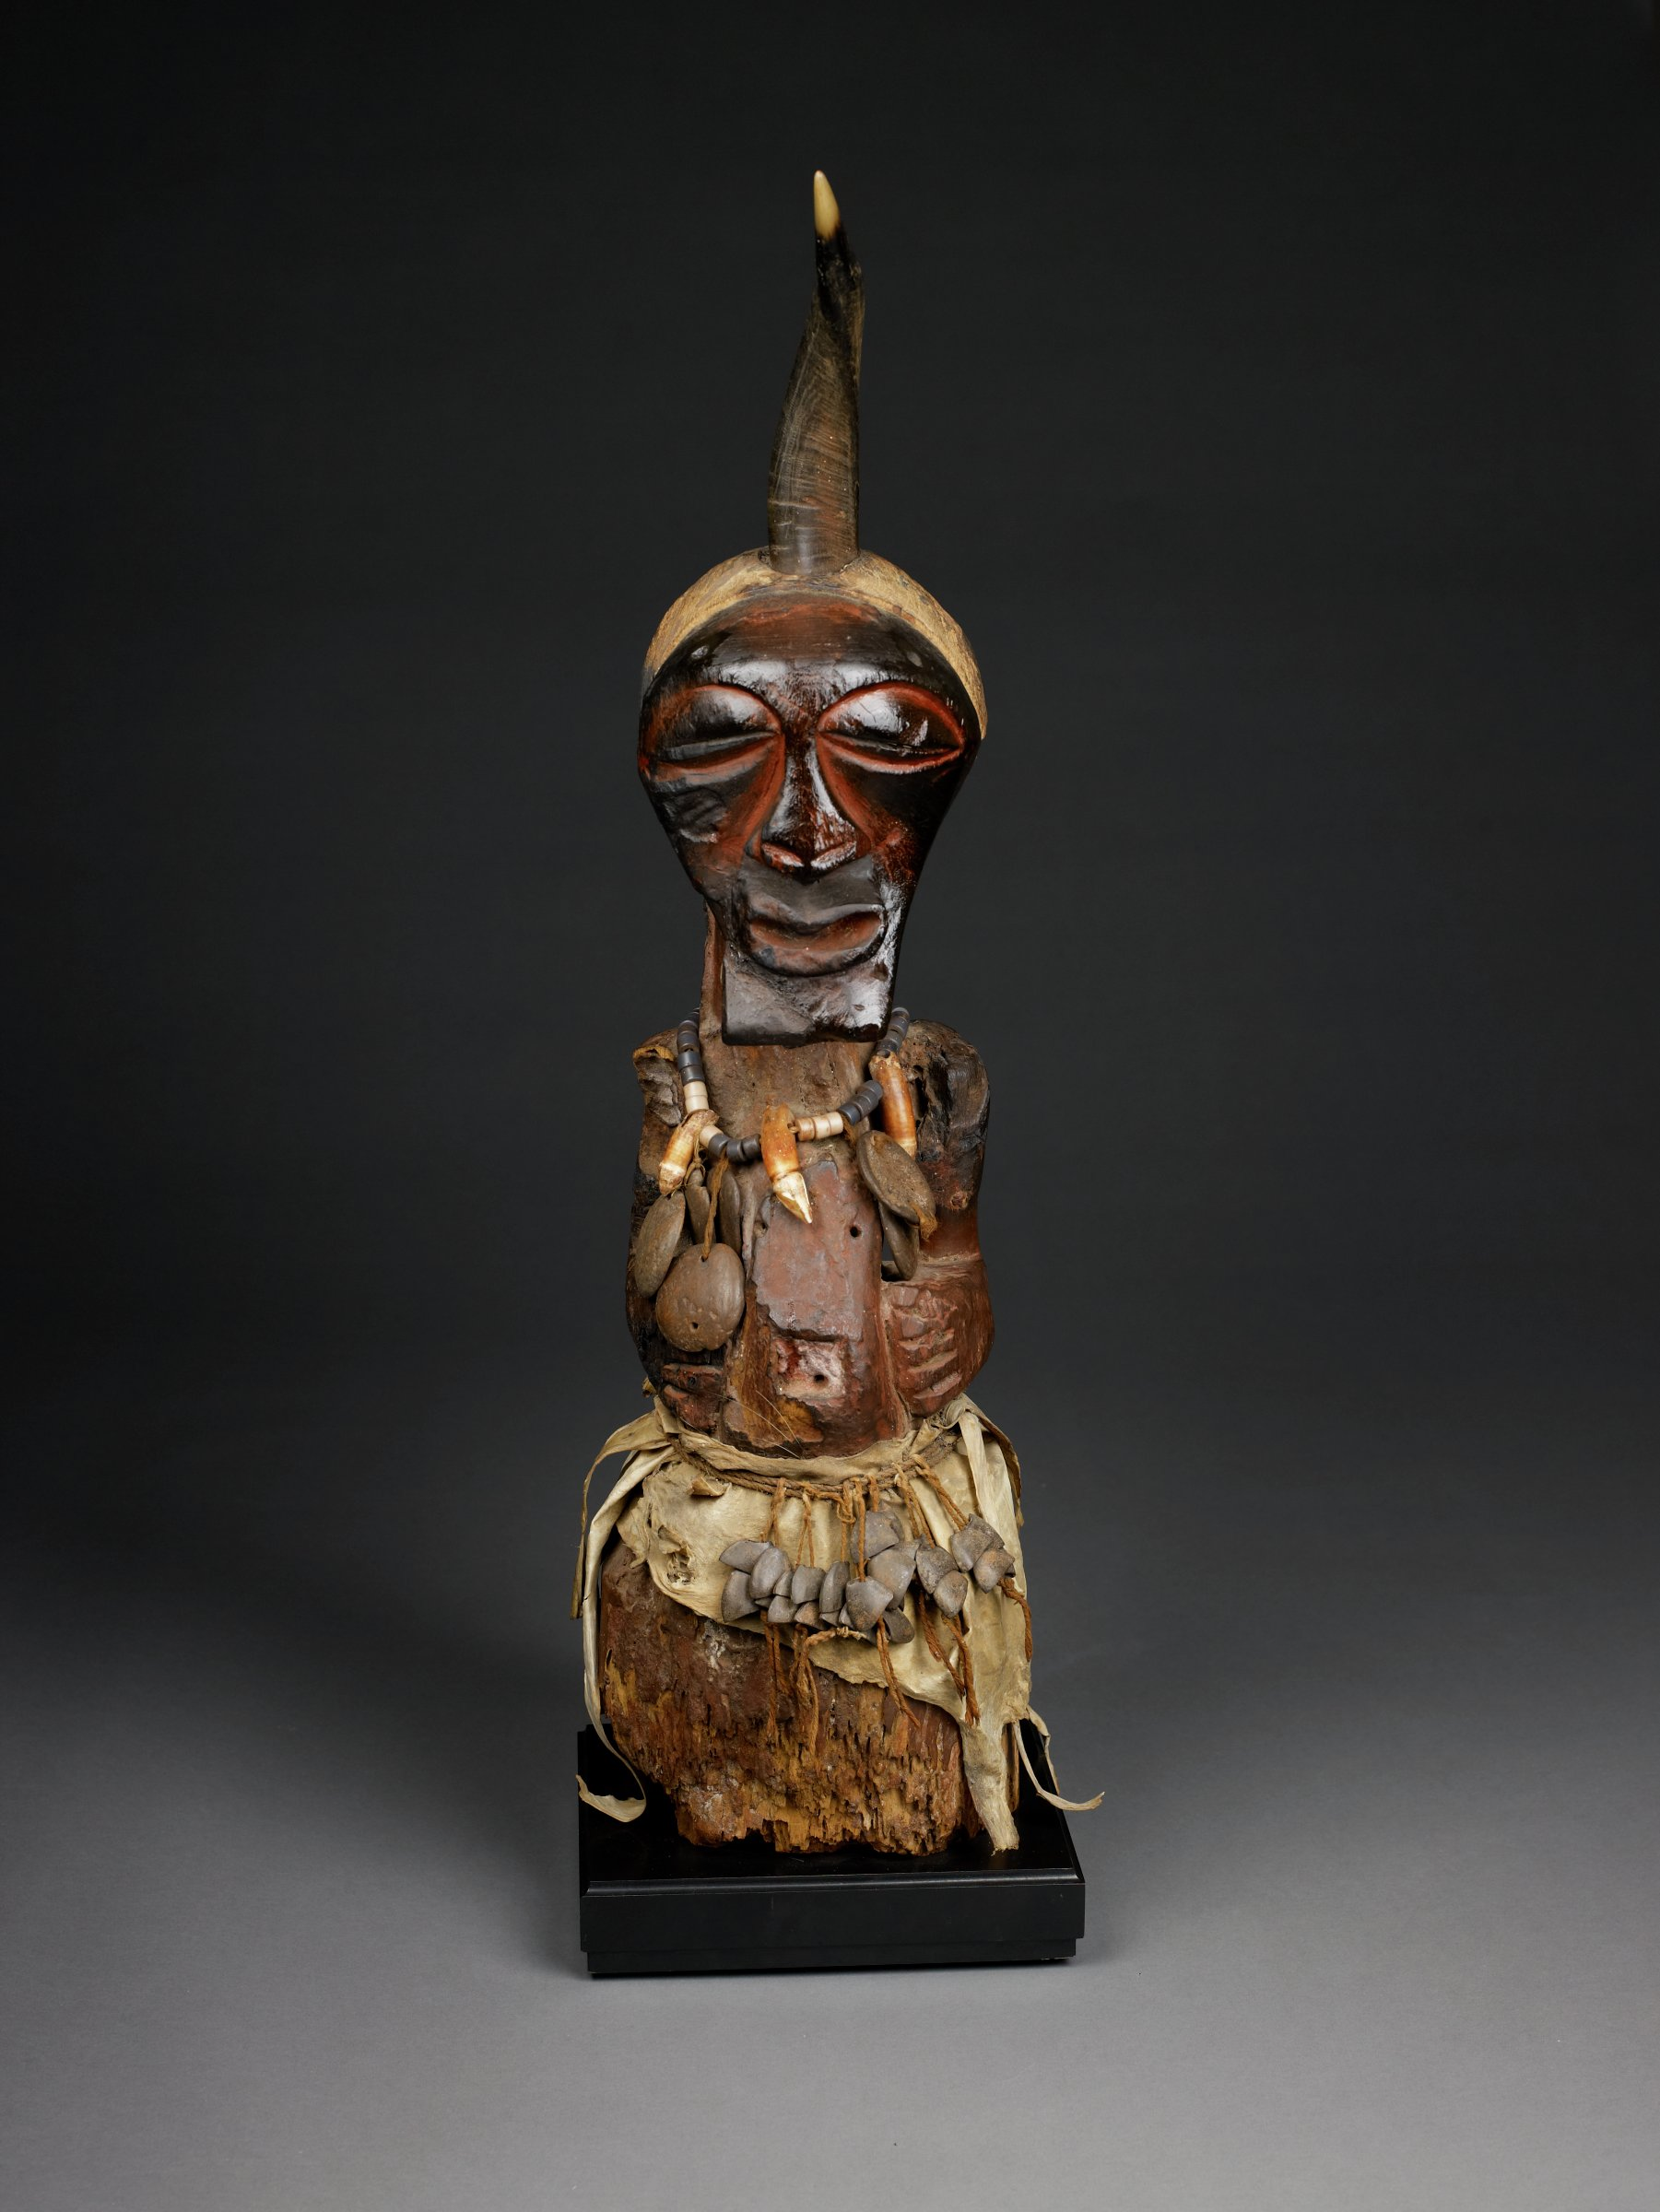 Standing male power figure with bent arms resting on distended abdomen; below abdomen, figure is unarticulated block, partially covered by animal skin and waist ornaments (large bell and metal jangles attached to cord). Animal horn emerges vertically from top of head. Face has slitted, bulbous eyes, broad nose, protruding and slightly upturned open mouth, square beard. Necklace of glass beads, animal teeth, seed pods hangs from neck onto abdomen. Umbilical area has opening where medicinal materials once existed.